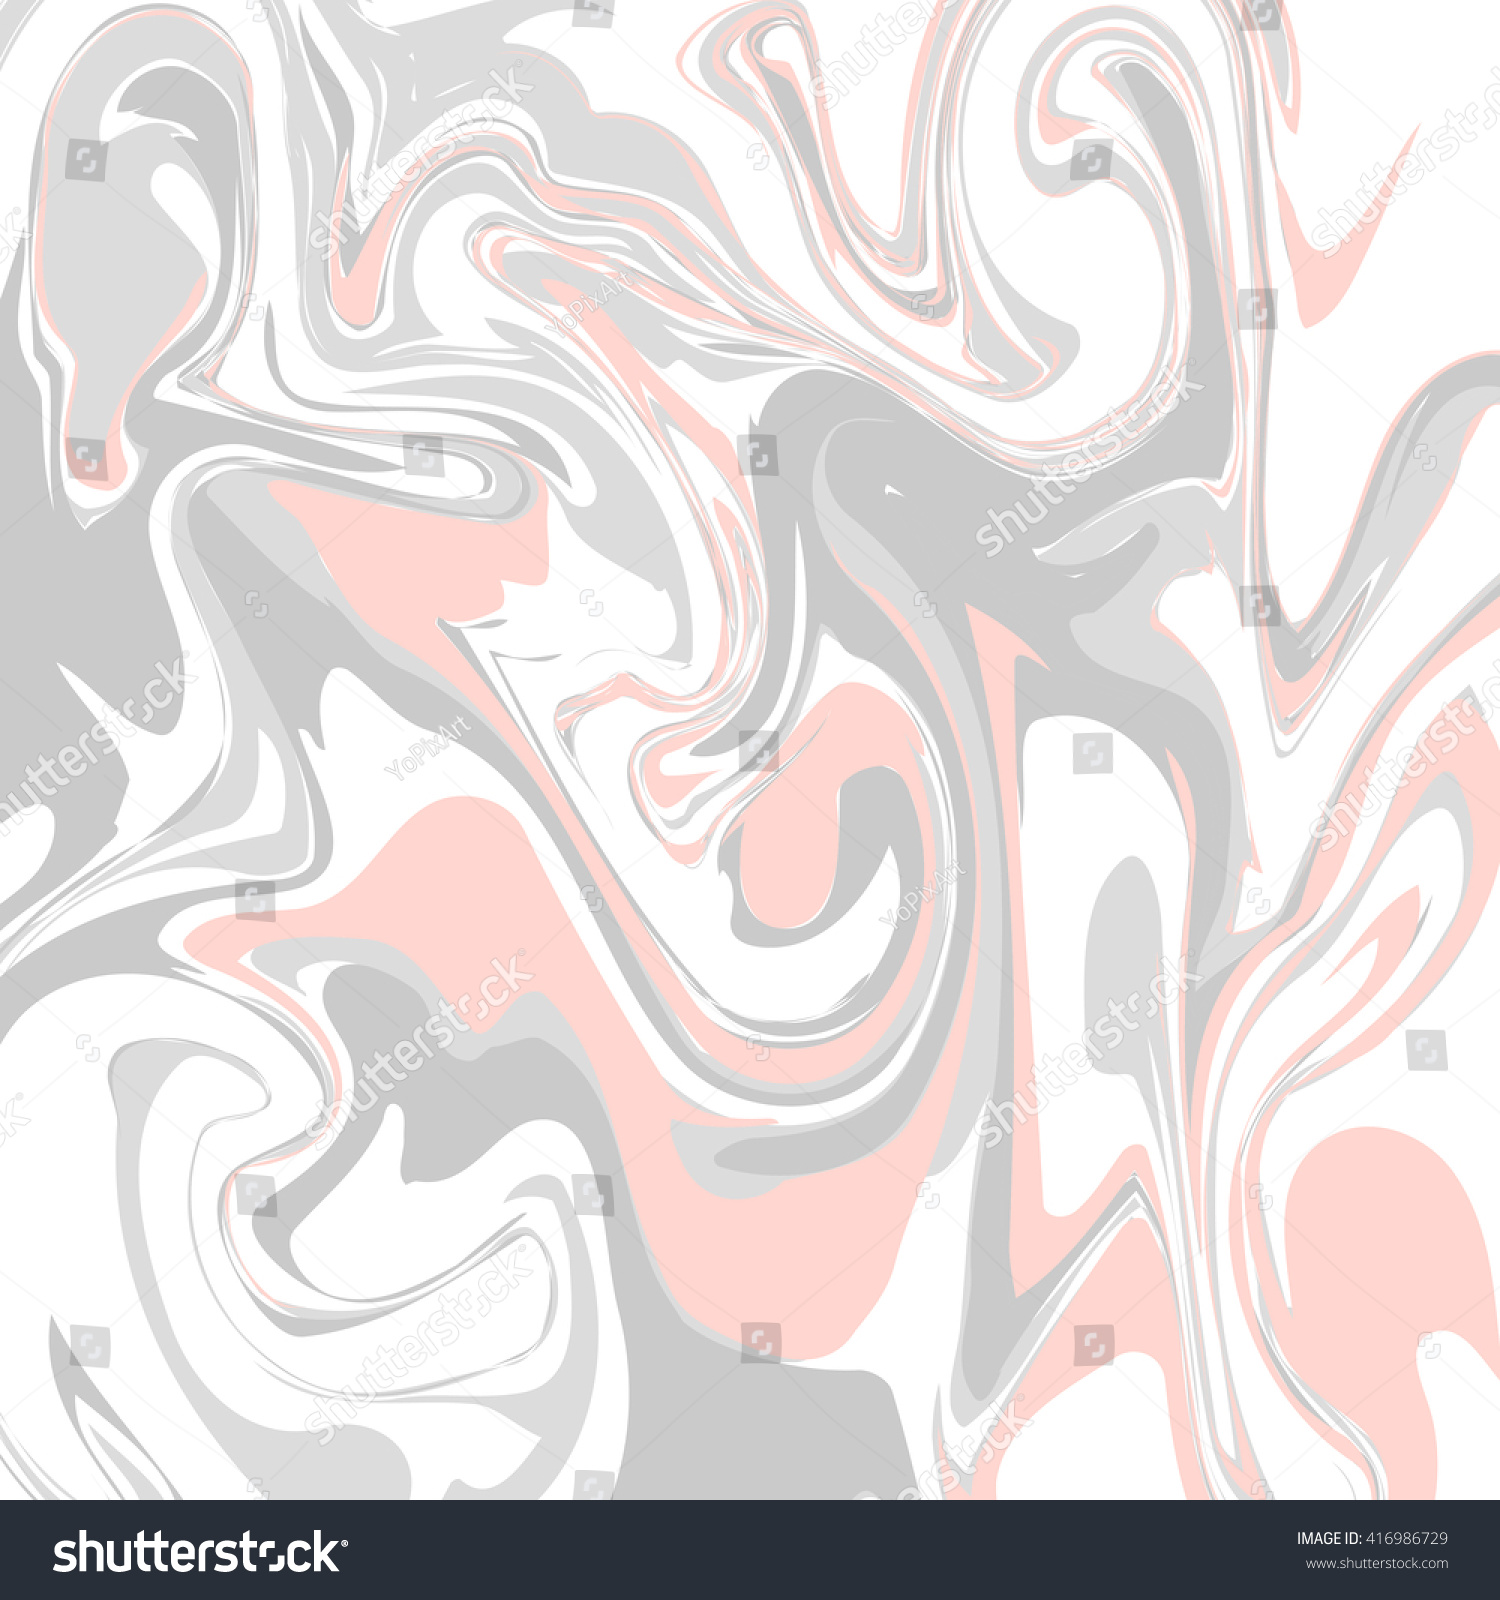 Wonderful Wallpaper Marble Pastel - stock-vector-pastel-pink-and-grey-marble-floor-texture-tile-light-chaotic-marbled-paint-stains-background-416986729  Picture_995114.jpg